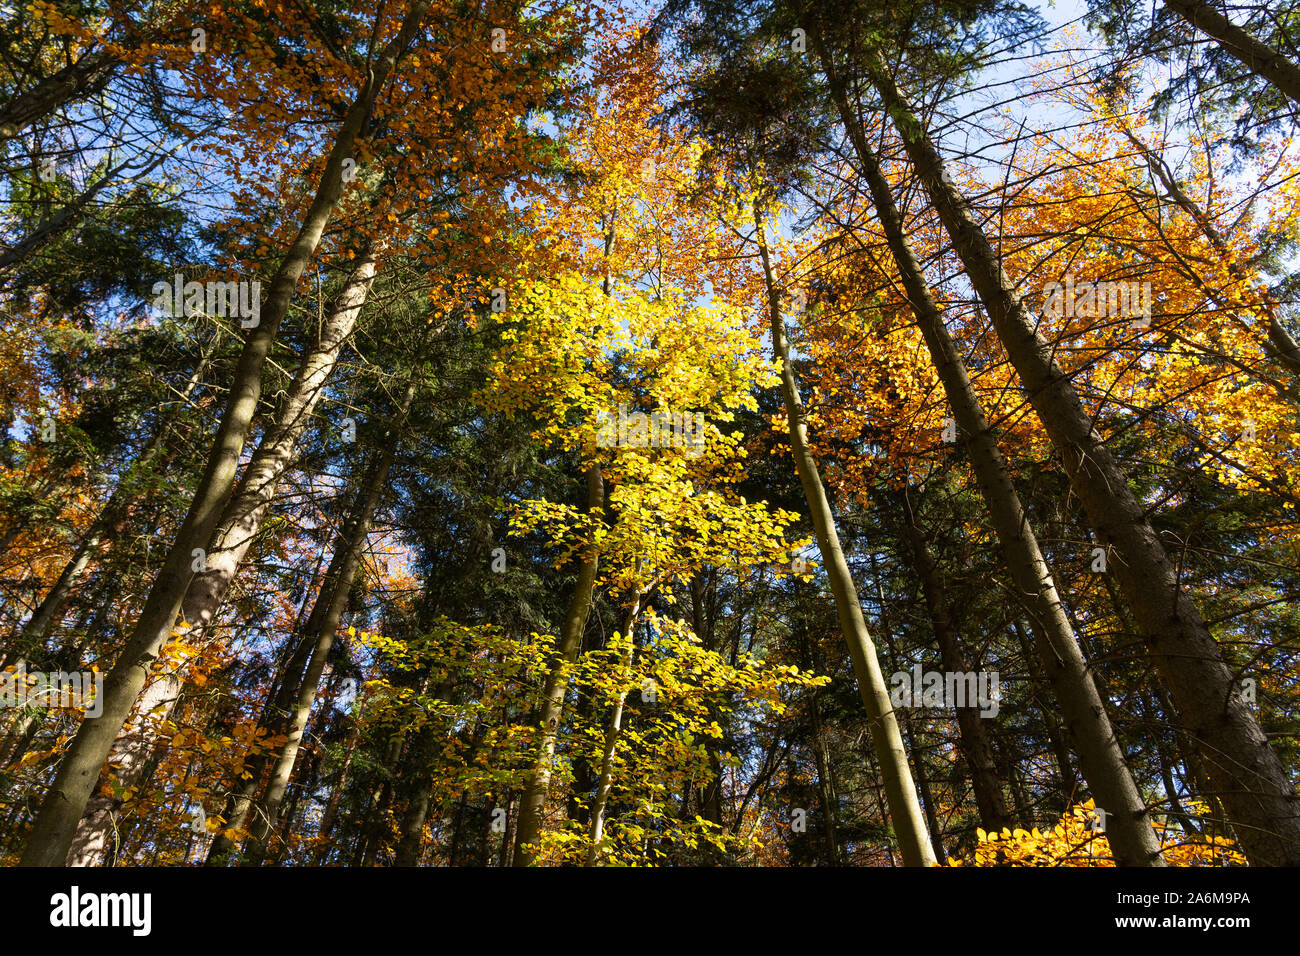 Colorful Beech trees (Fagus Sylvatica) and Douglas Firs (pseudotsuga menziesii) in a forest in autumn / fall with yellow and orange leaves, Austria Stock Photo